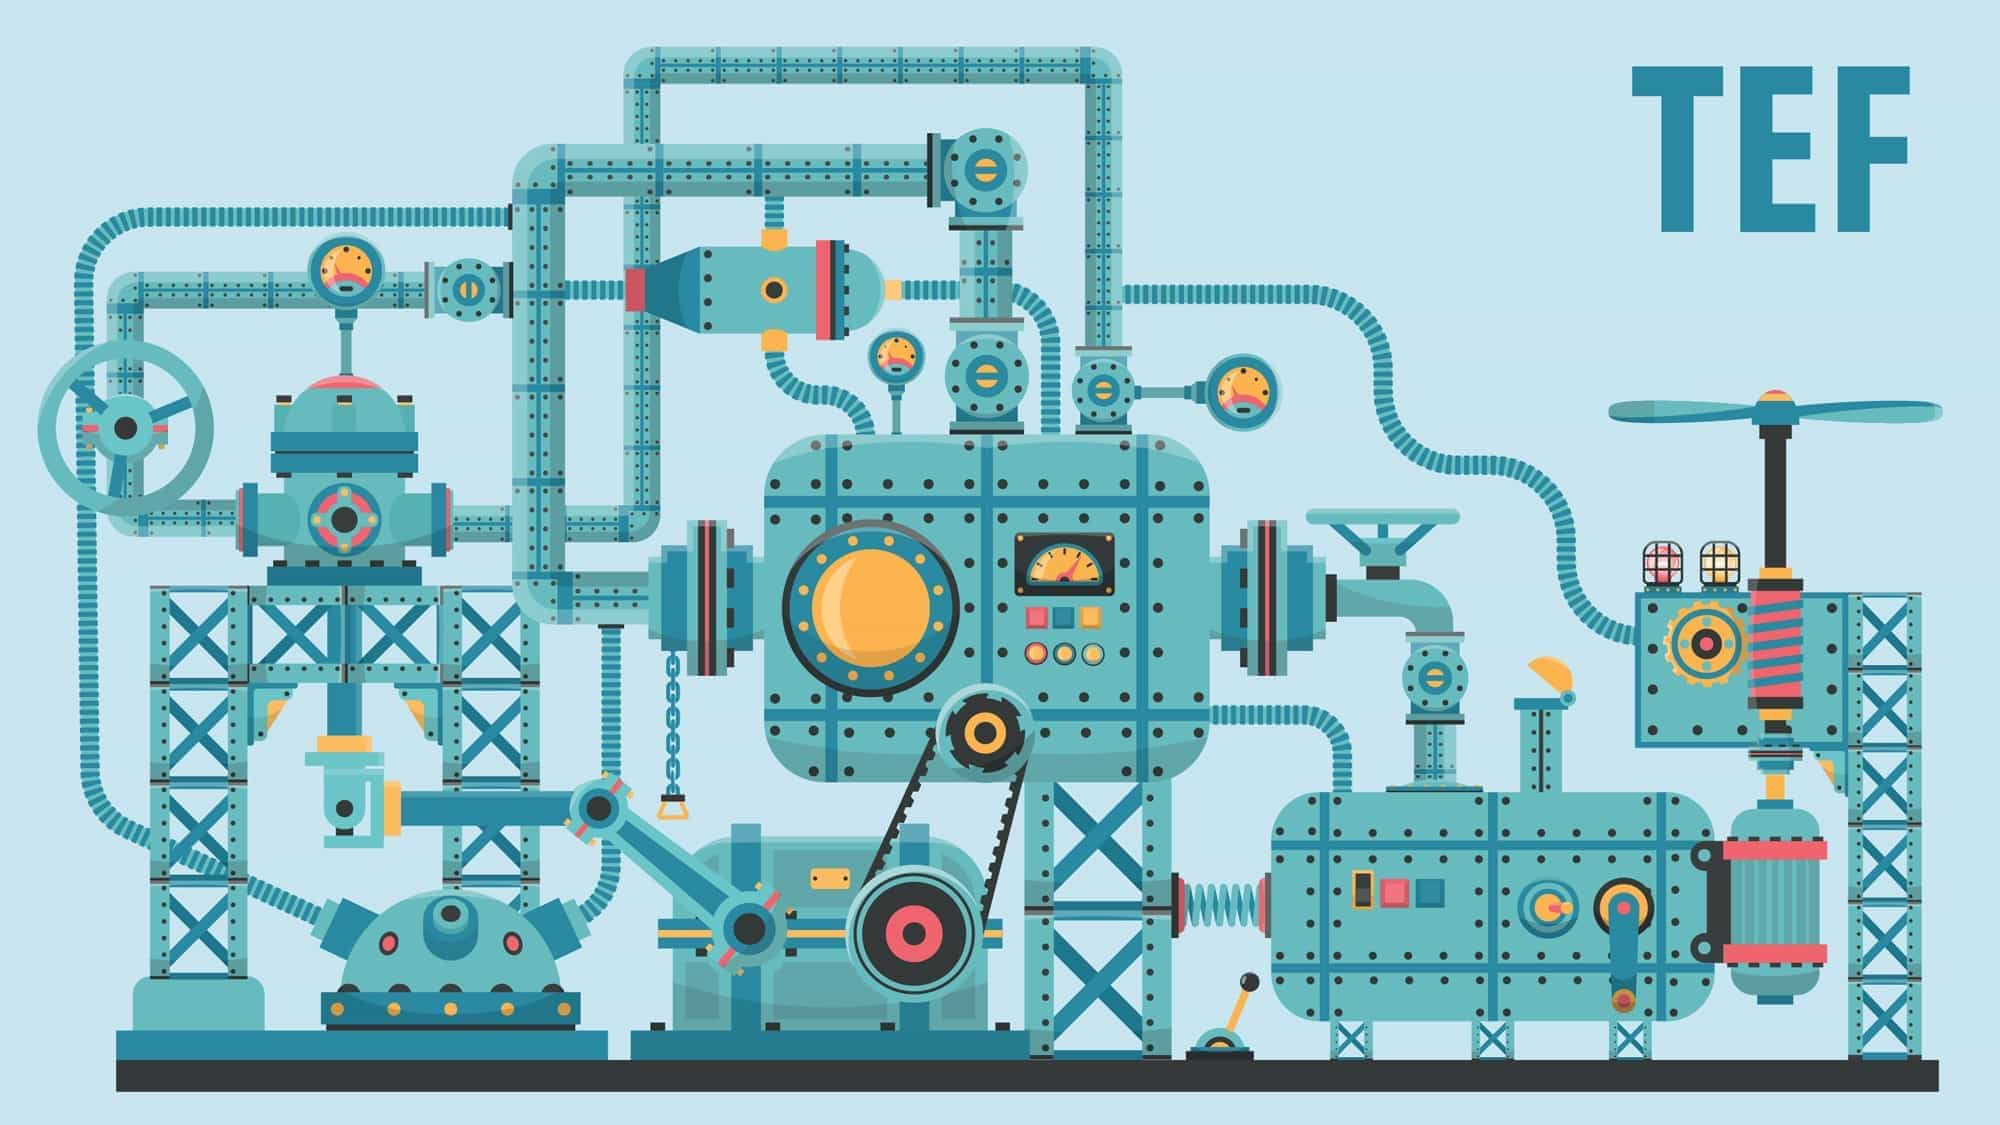 The Incredible Machine Mark III: Our visual guide to the TEF ...